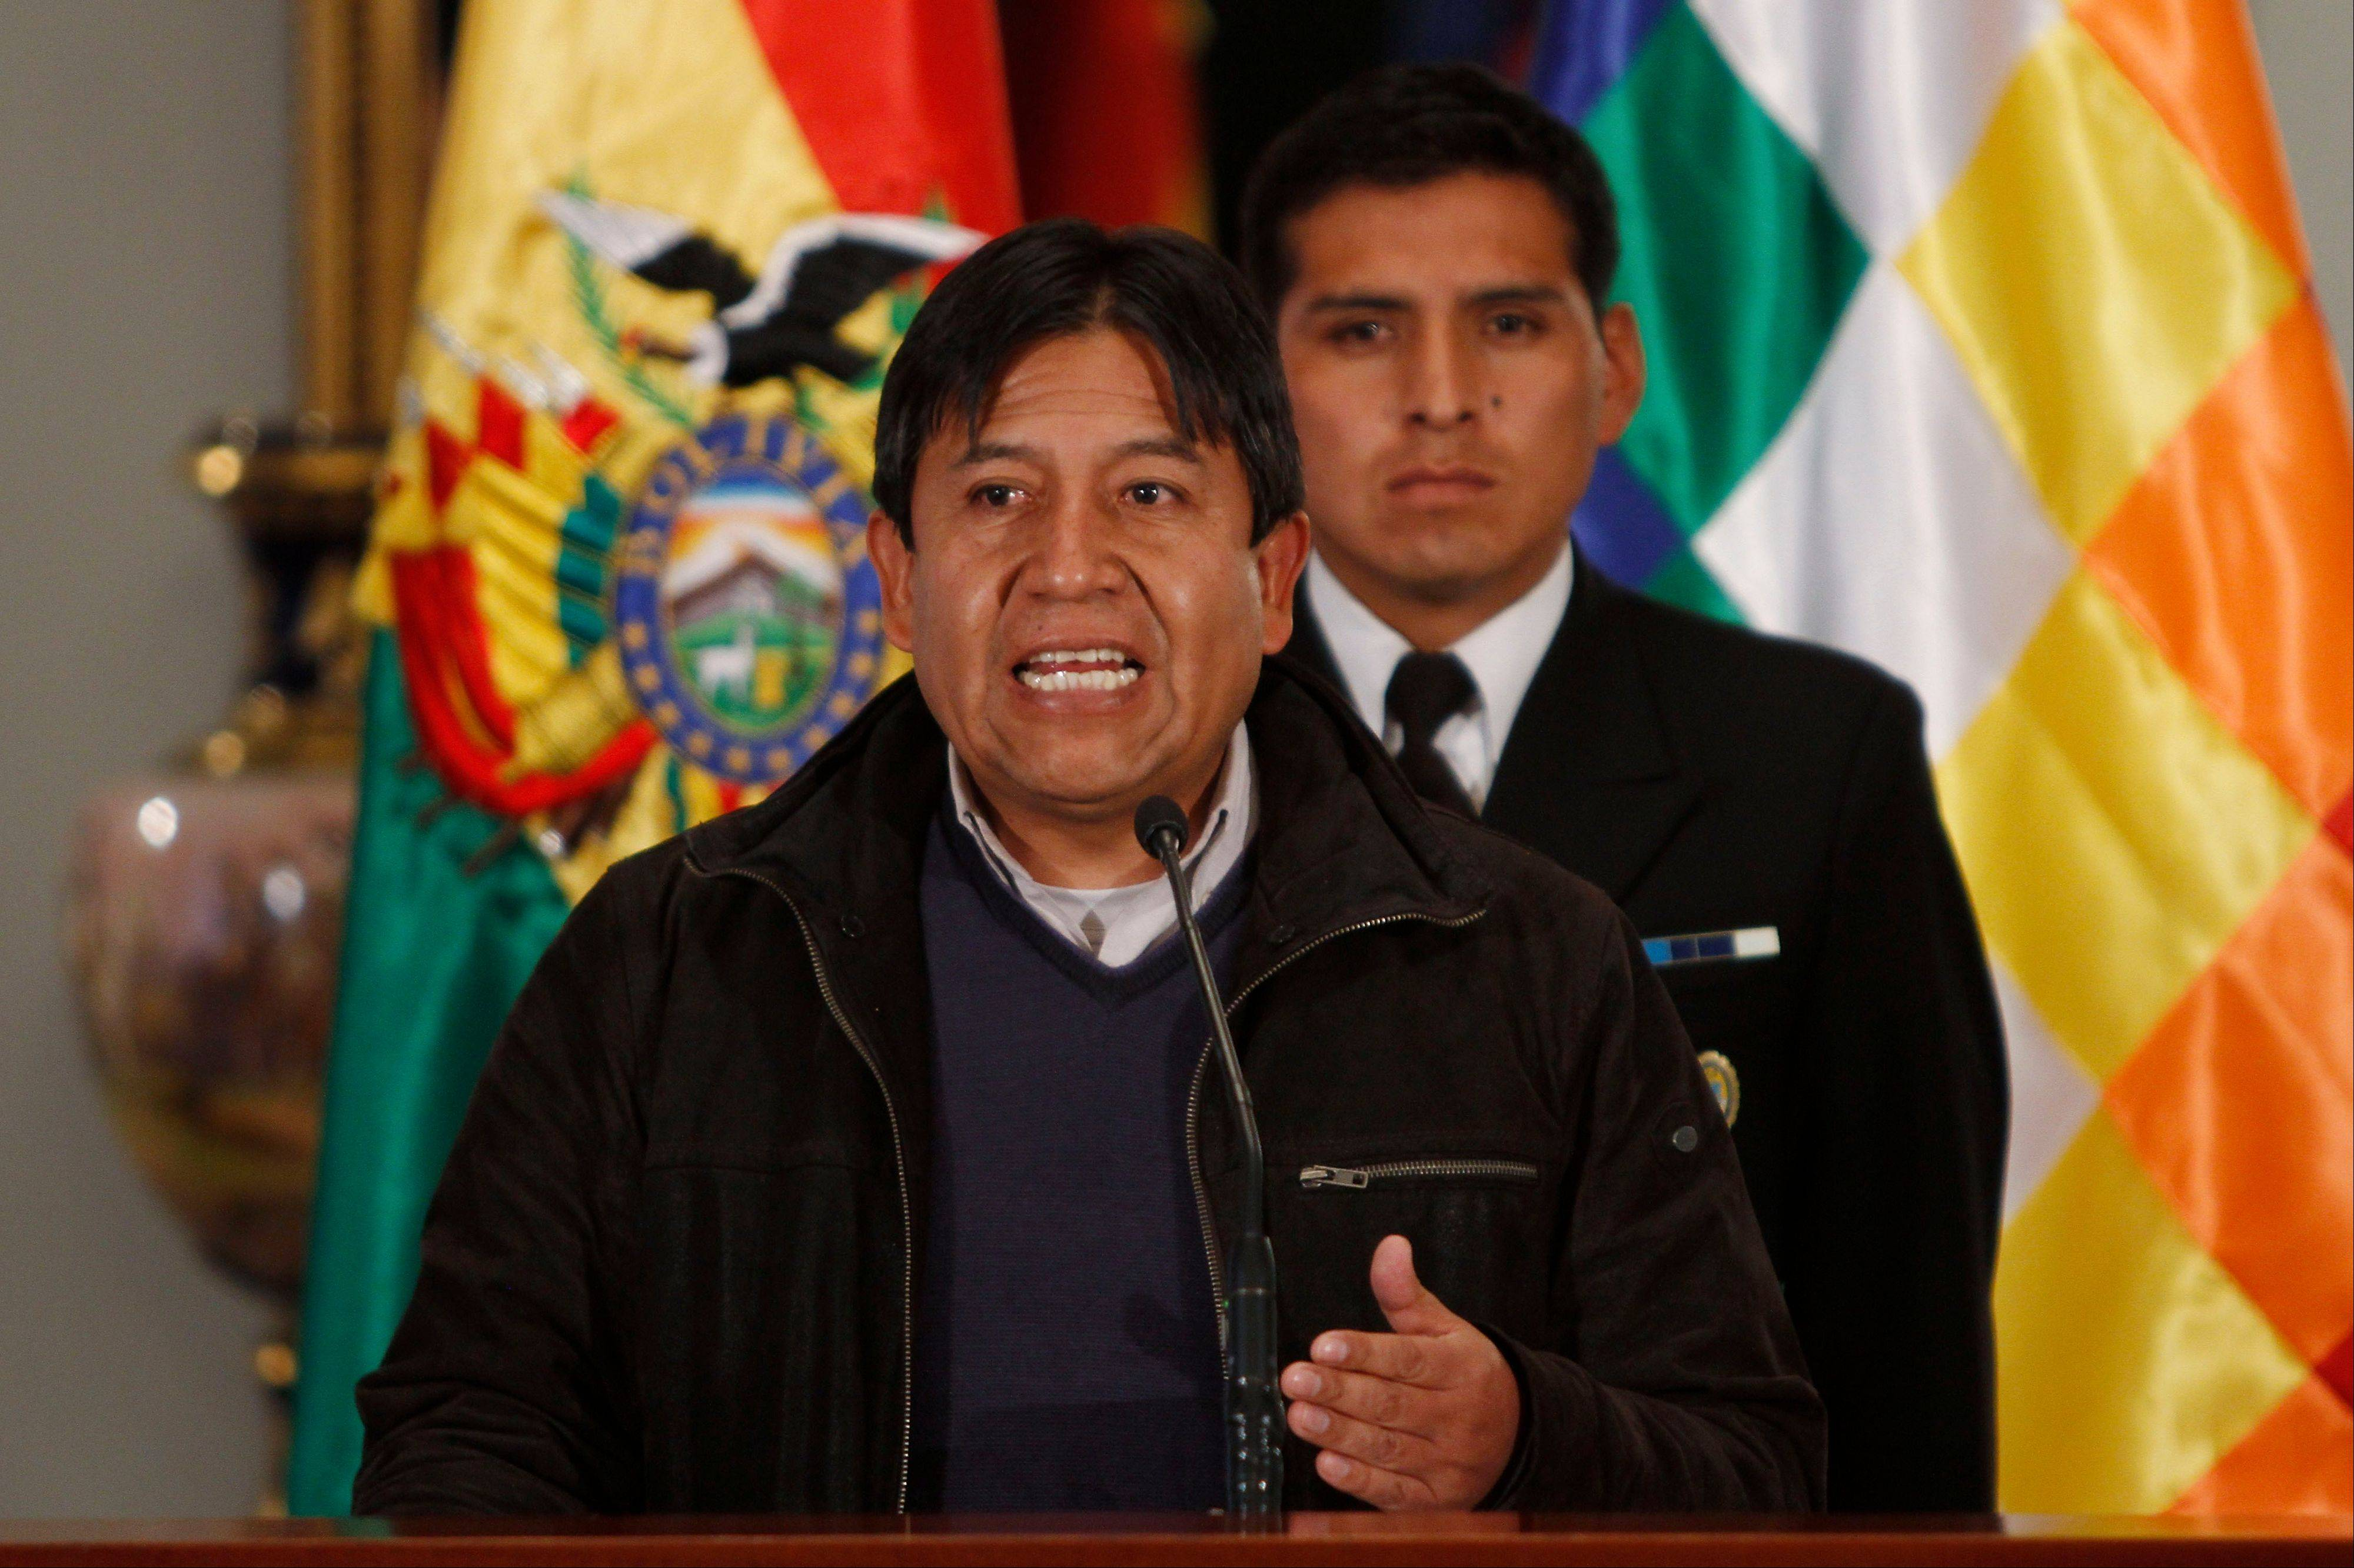 Bolivia�s Foreign Minister David Choquehuanca, speaking in La Paz, Bolivia, Tuesday, said the plane bringing President Evo Morales home from Russia was rerouted to Austria after France and Portugal refused to let it to cross their airspace because of suspicions that NSA leaker Edward Snowden was on board.